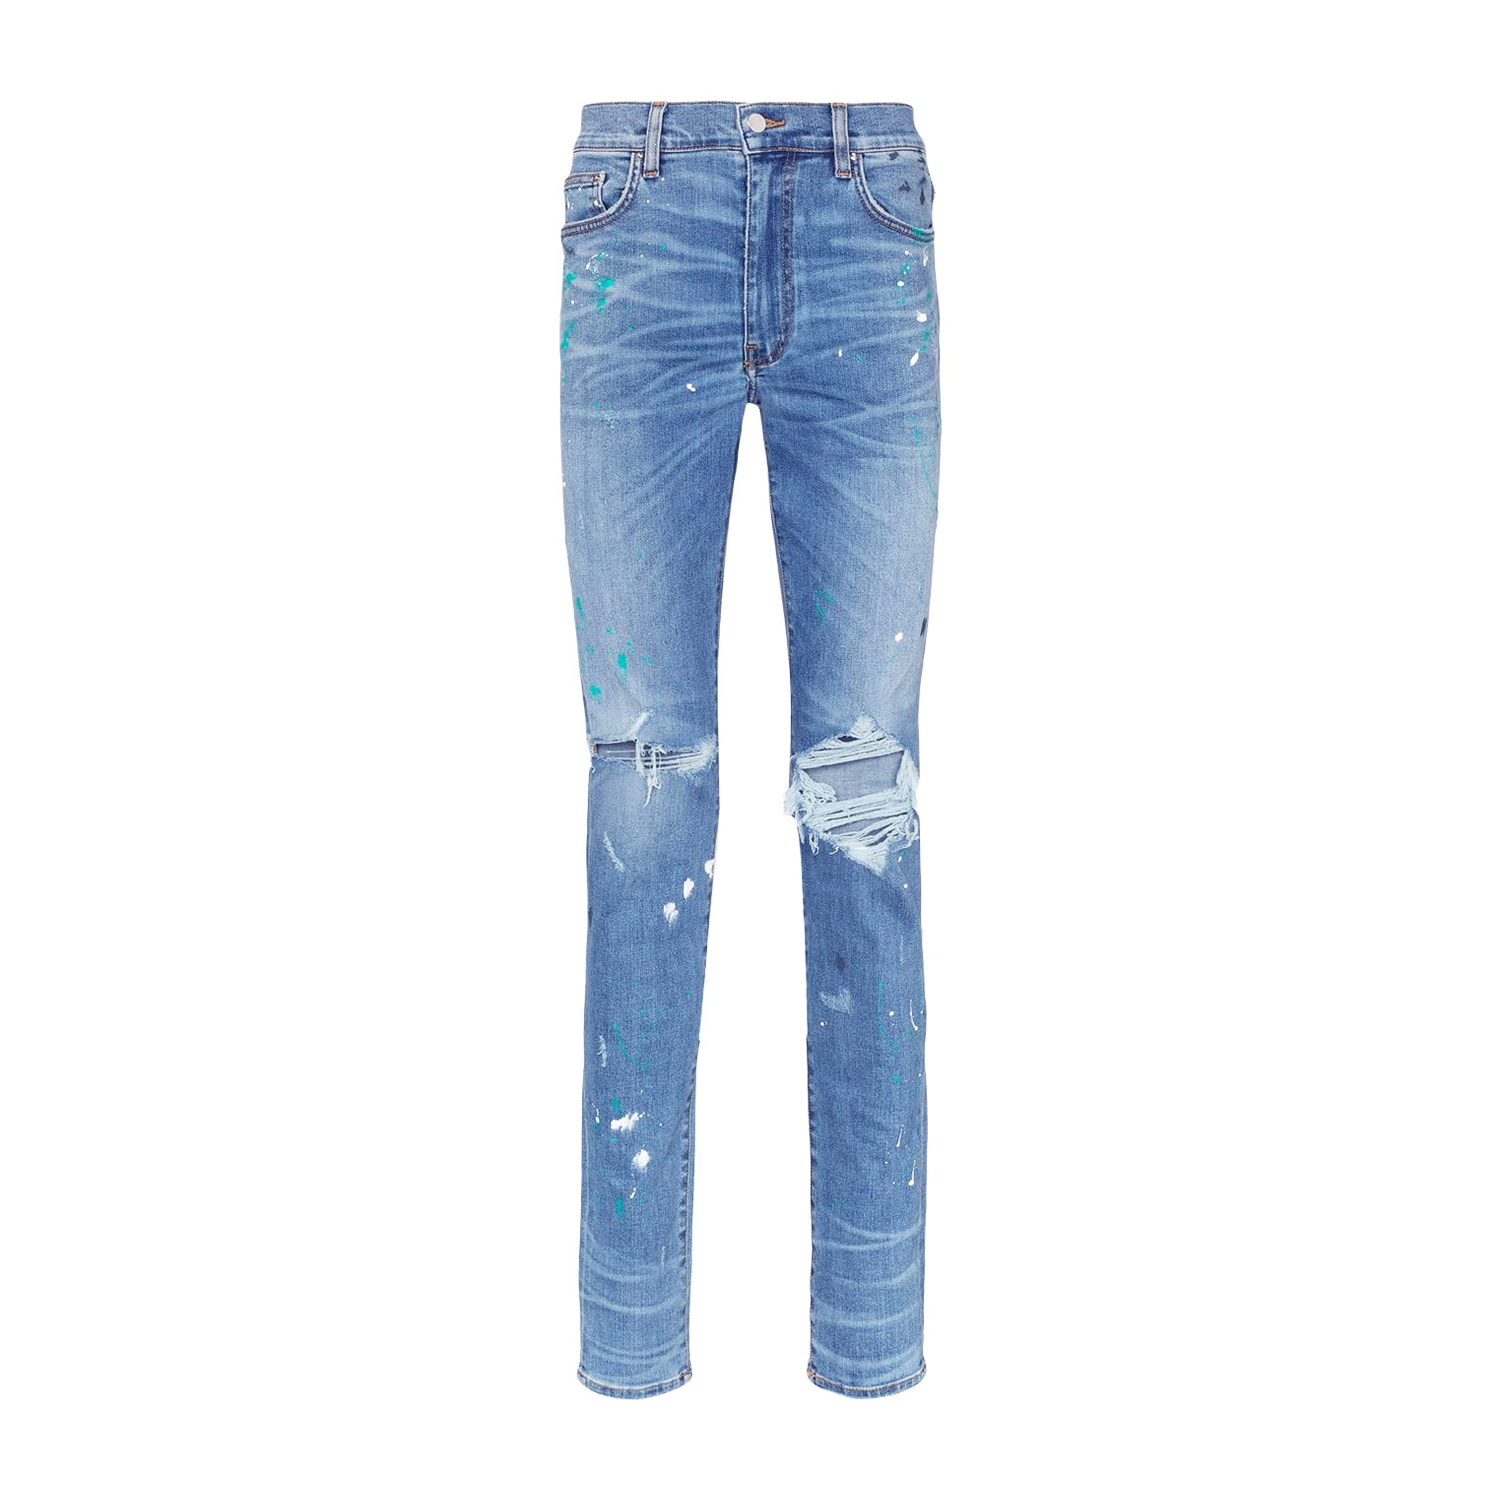 Amiri Paint Splatter Slim Fit Jeans   WHAT'S ON THE STAR